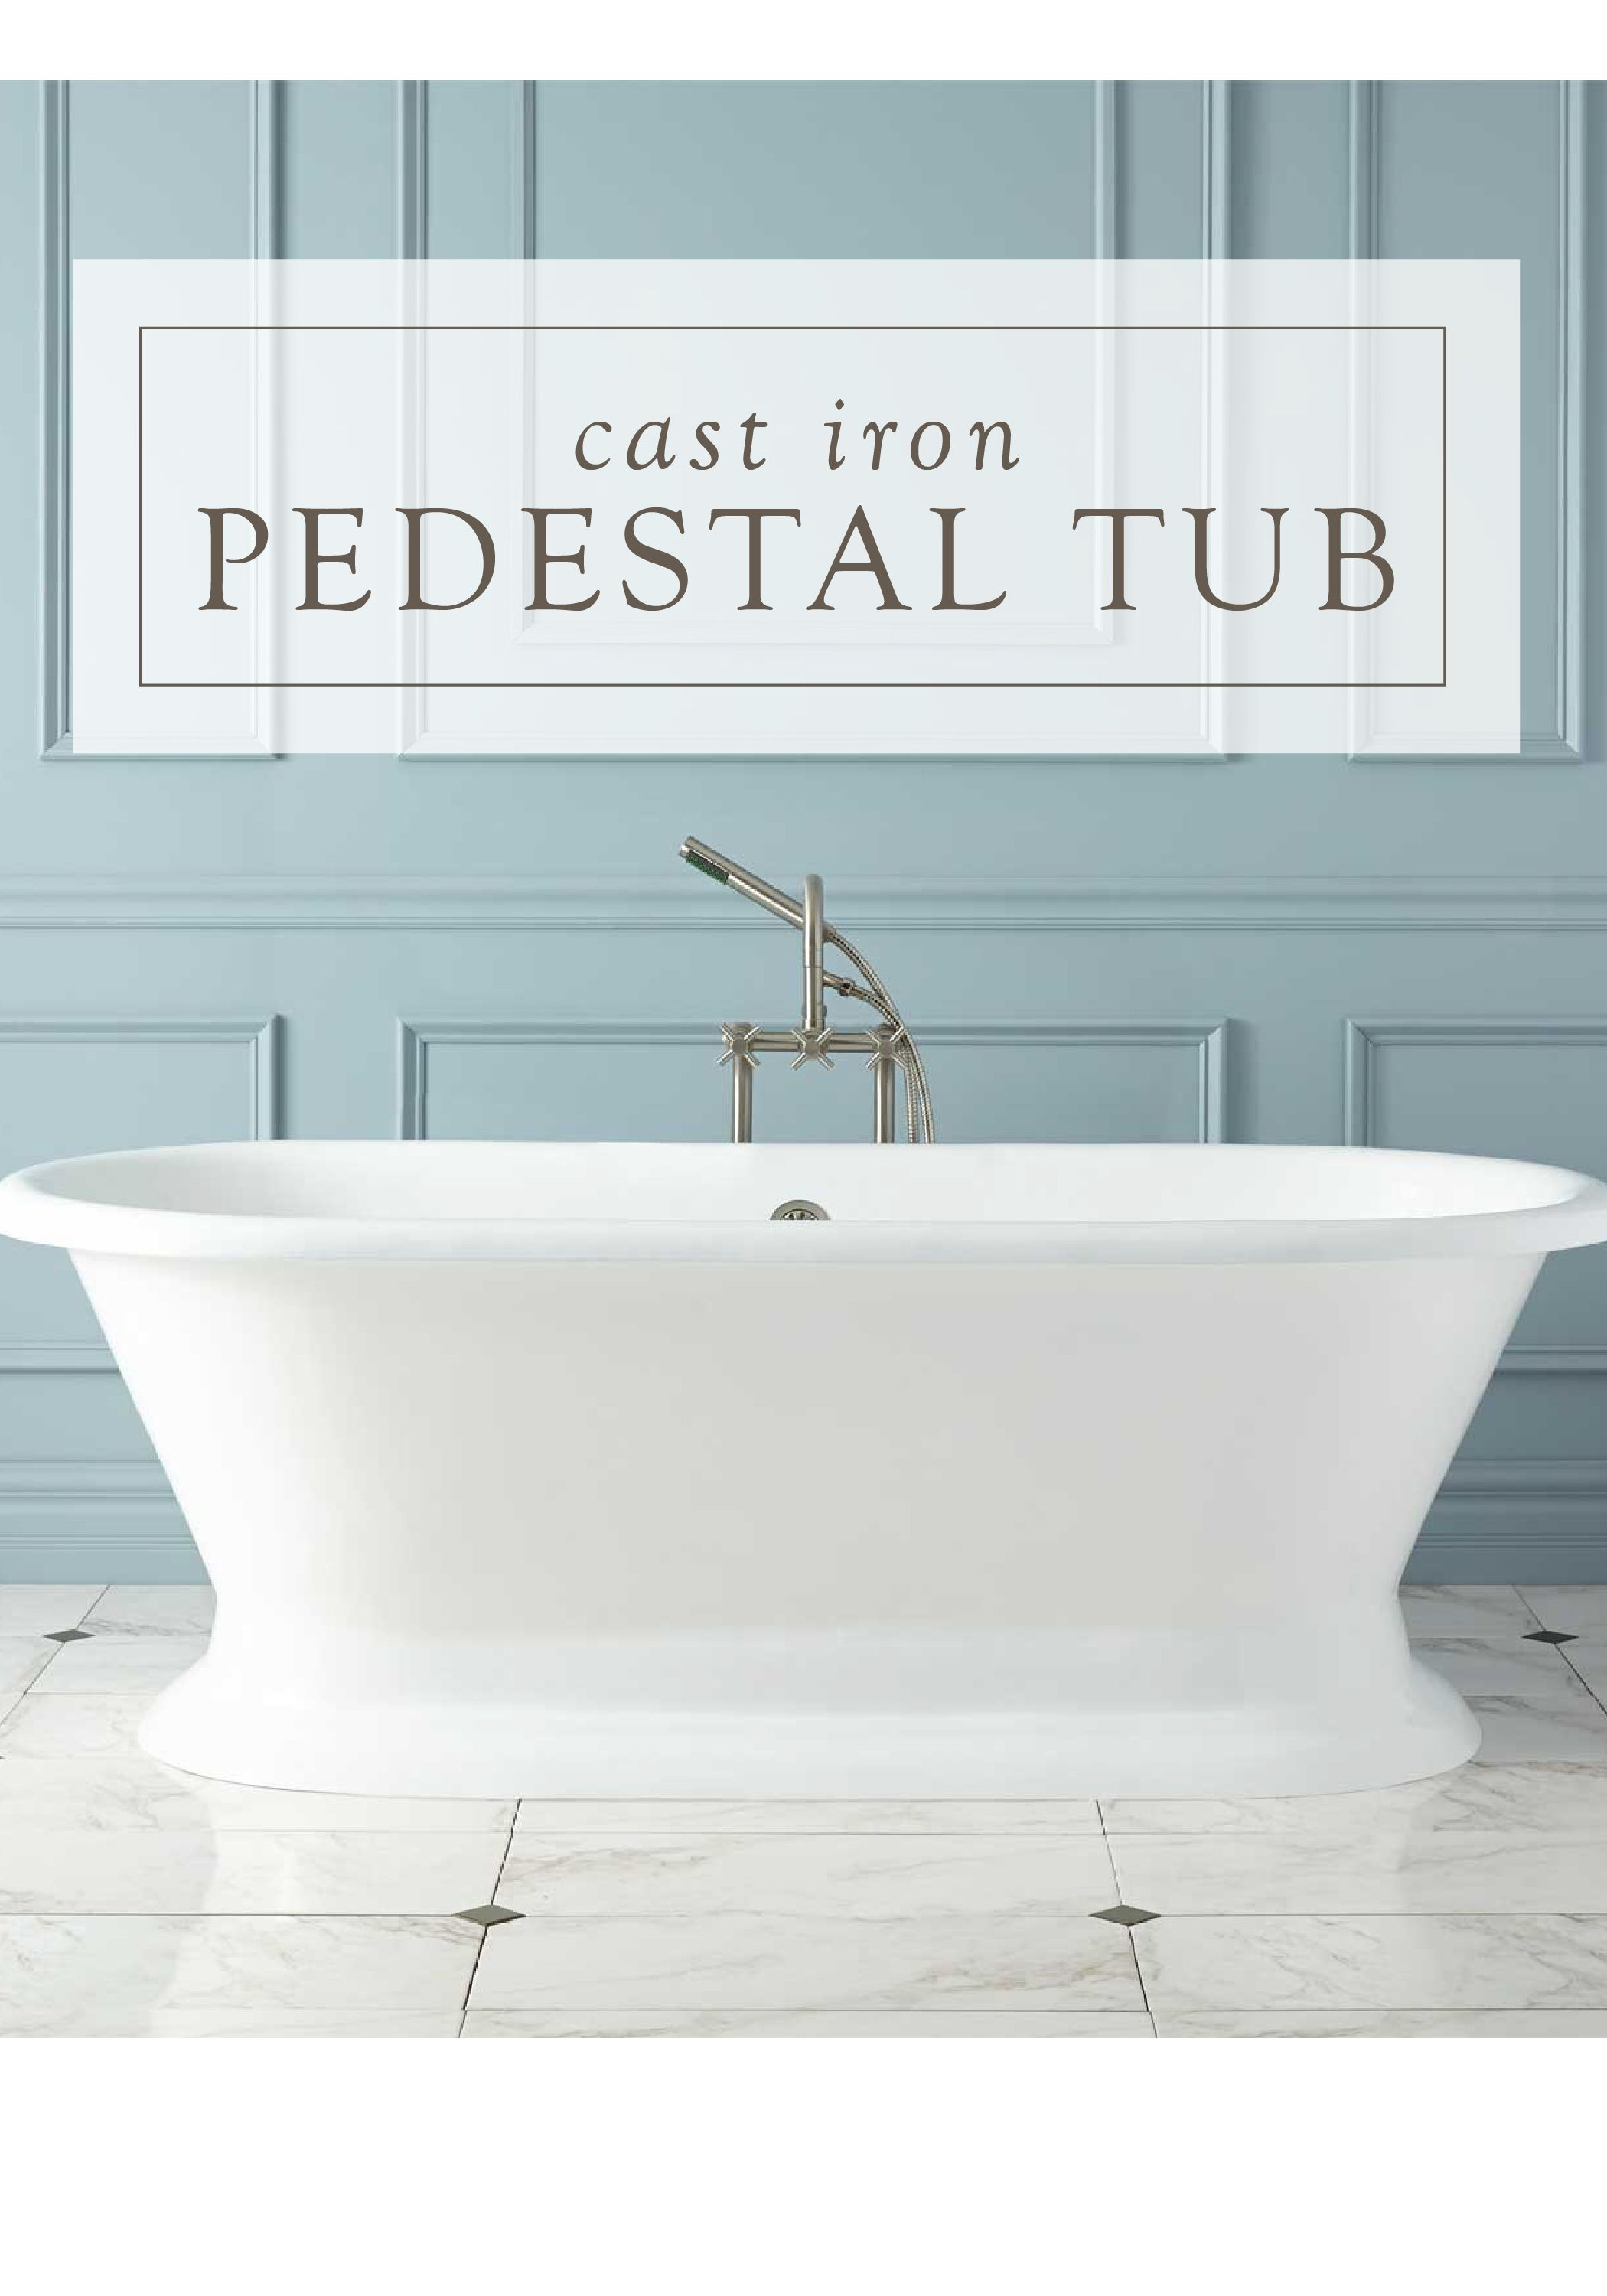 Remodel your bathroom by filling it with luxurious pieces like this classic cast iron pedestal tub from Signature Hardware Finish your sophisticated space